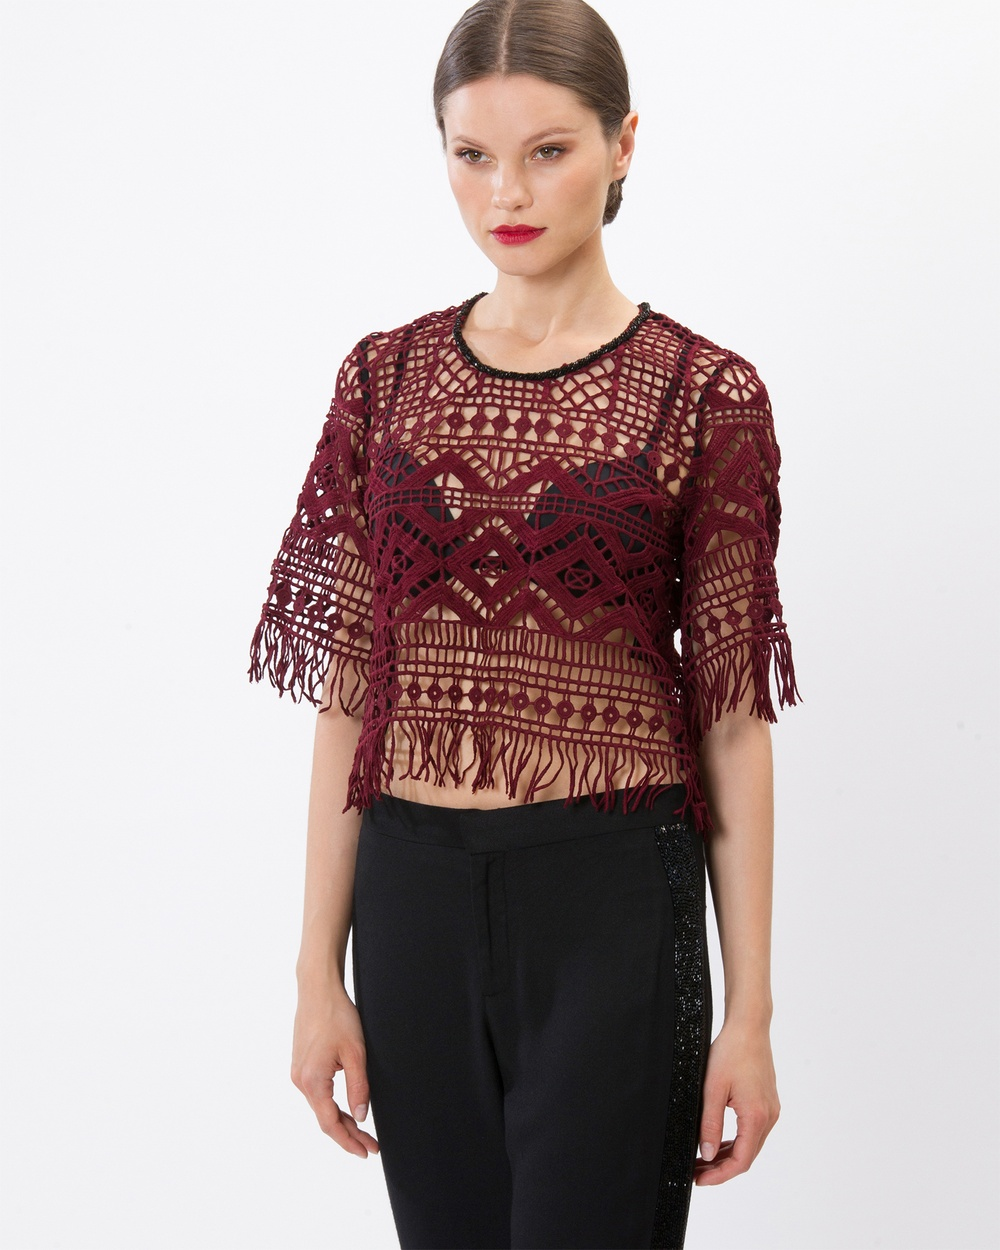 SIYONA Maya Mosaic Embroidered Beaded Top Tops Burgundy Maya Mosaic Embroidered Beaded Top